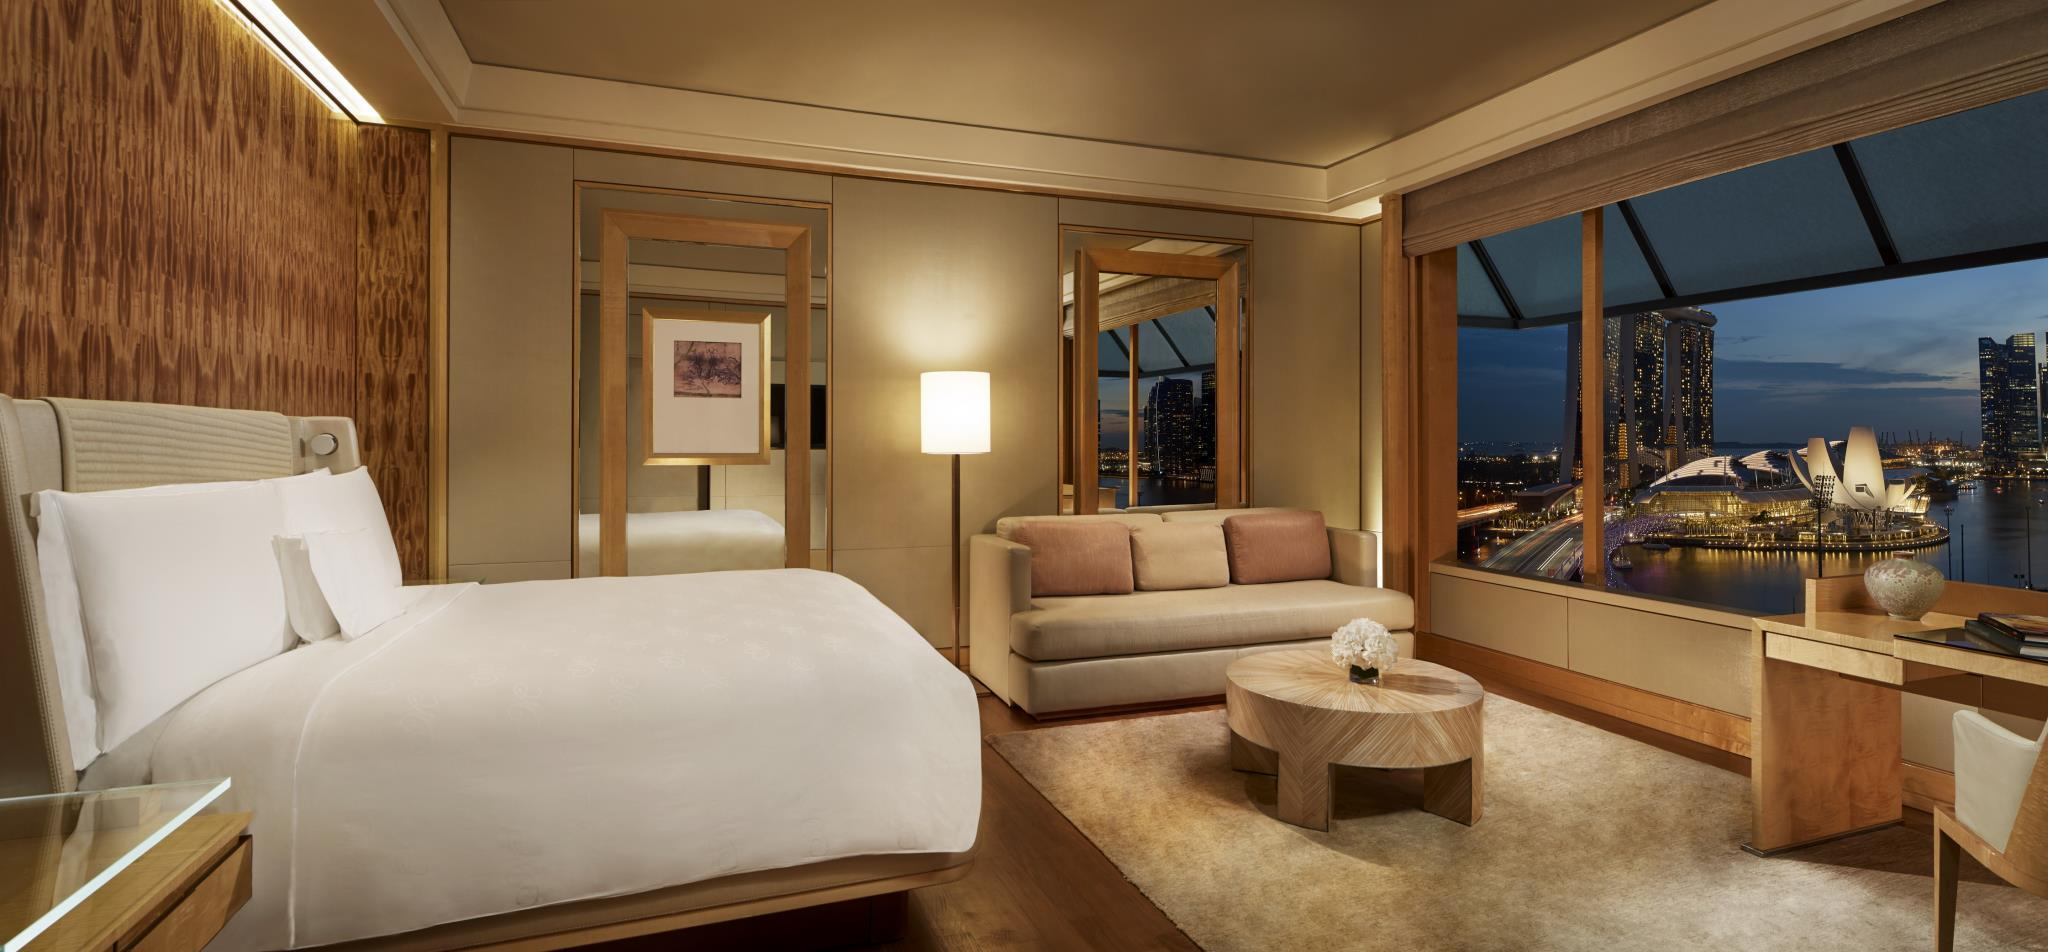 Deluxe Marina Room, Guest room, Marina Bay view